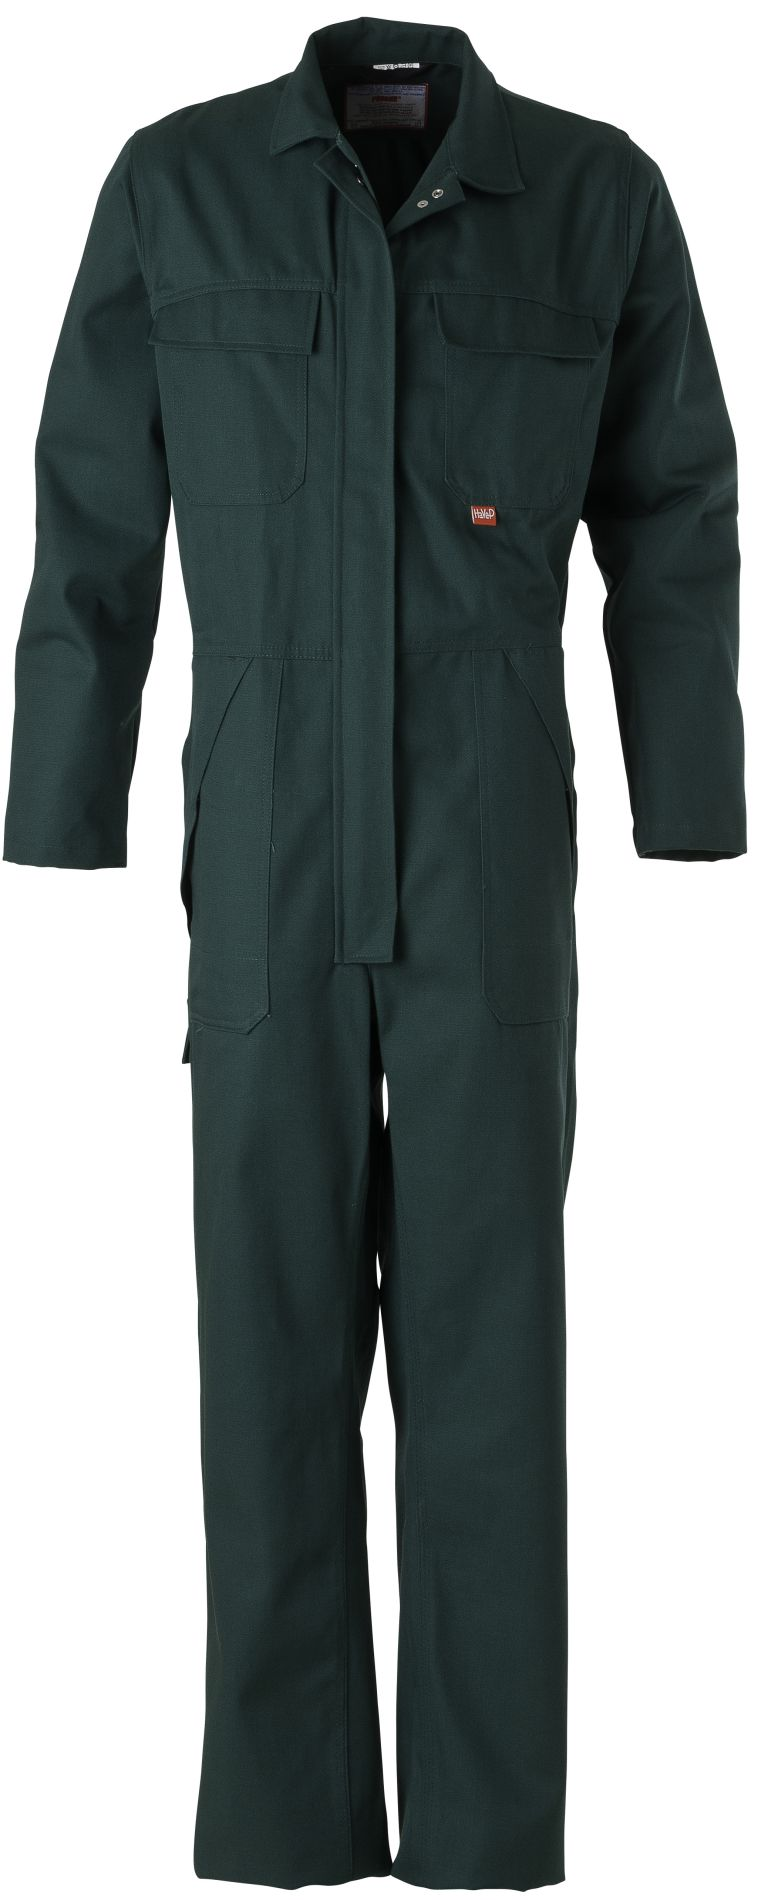 HaVeP Workwear/Protective wear Overall 2559